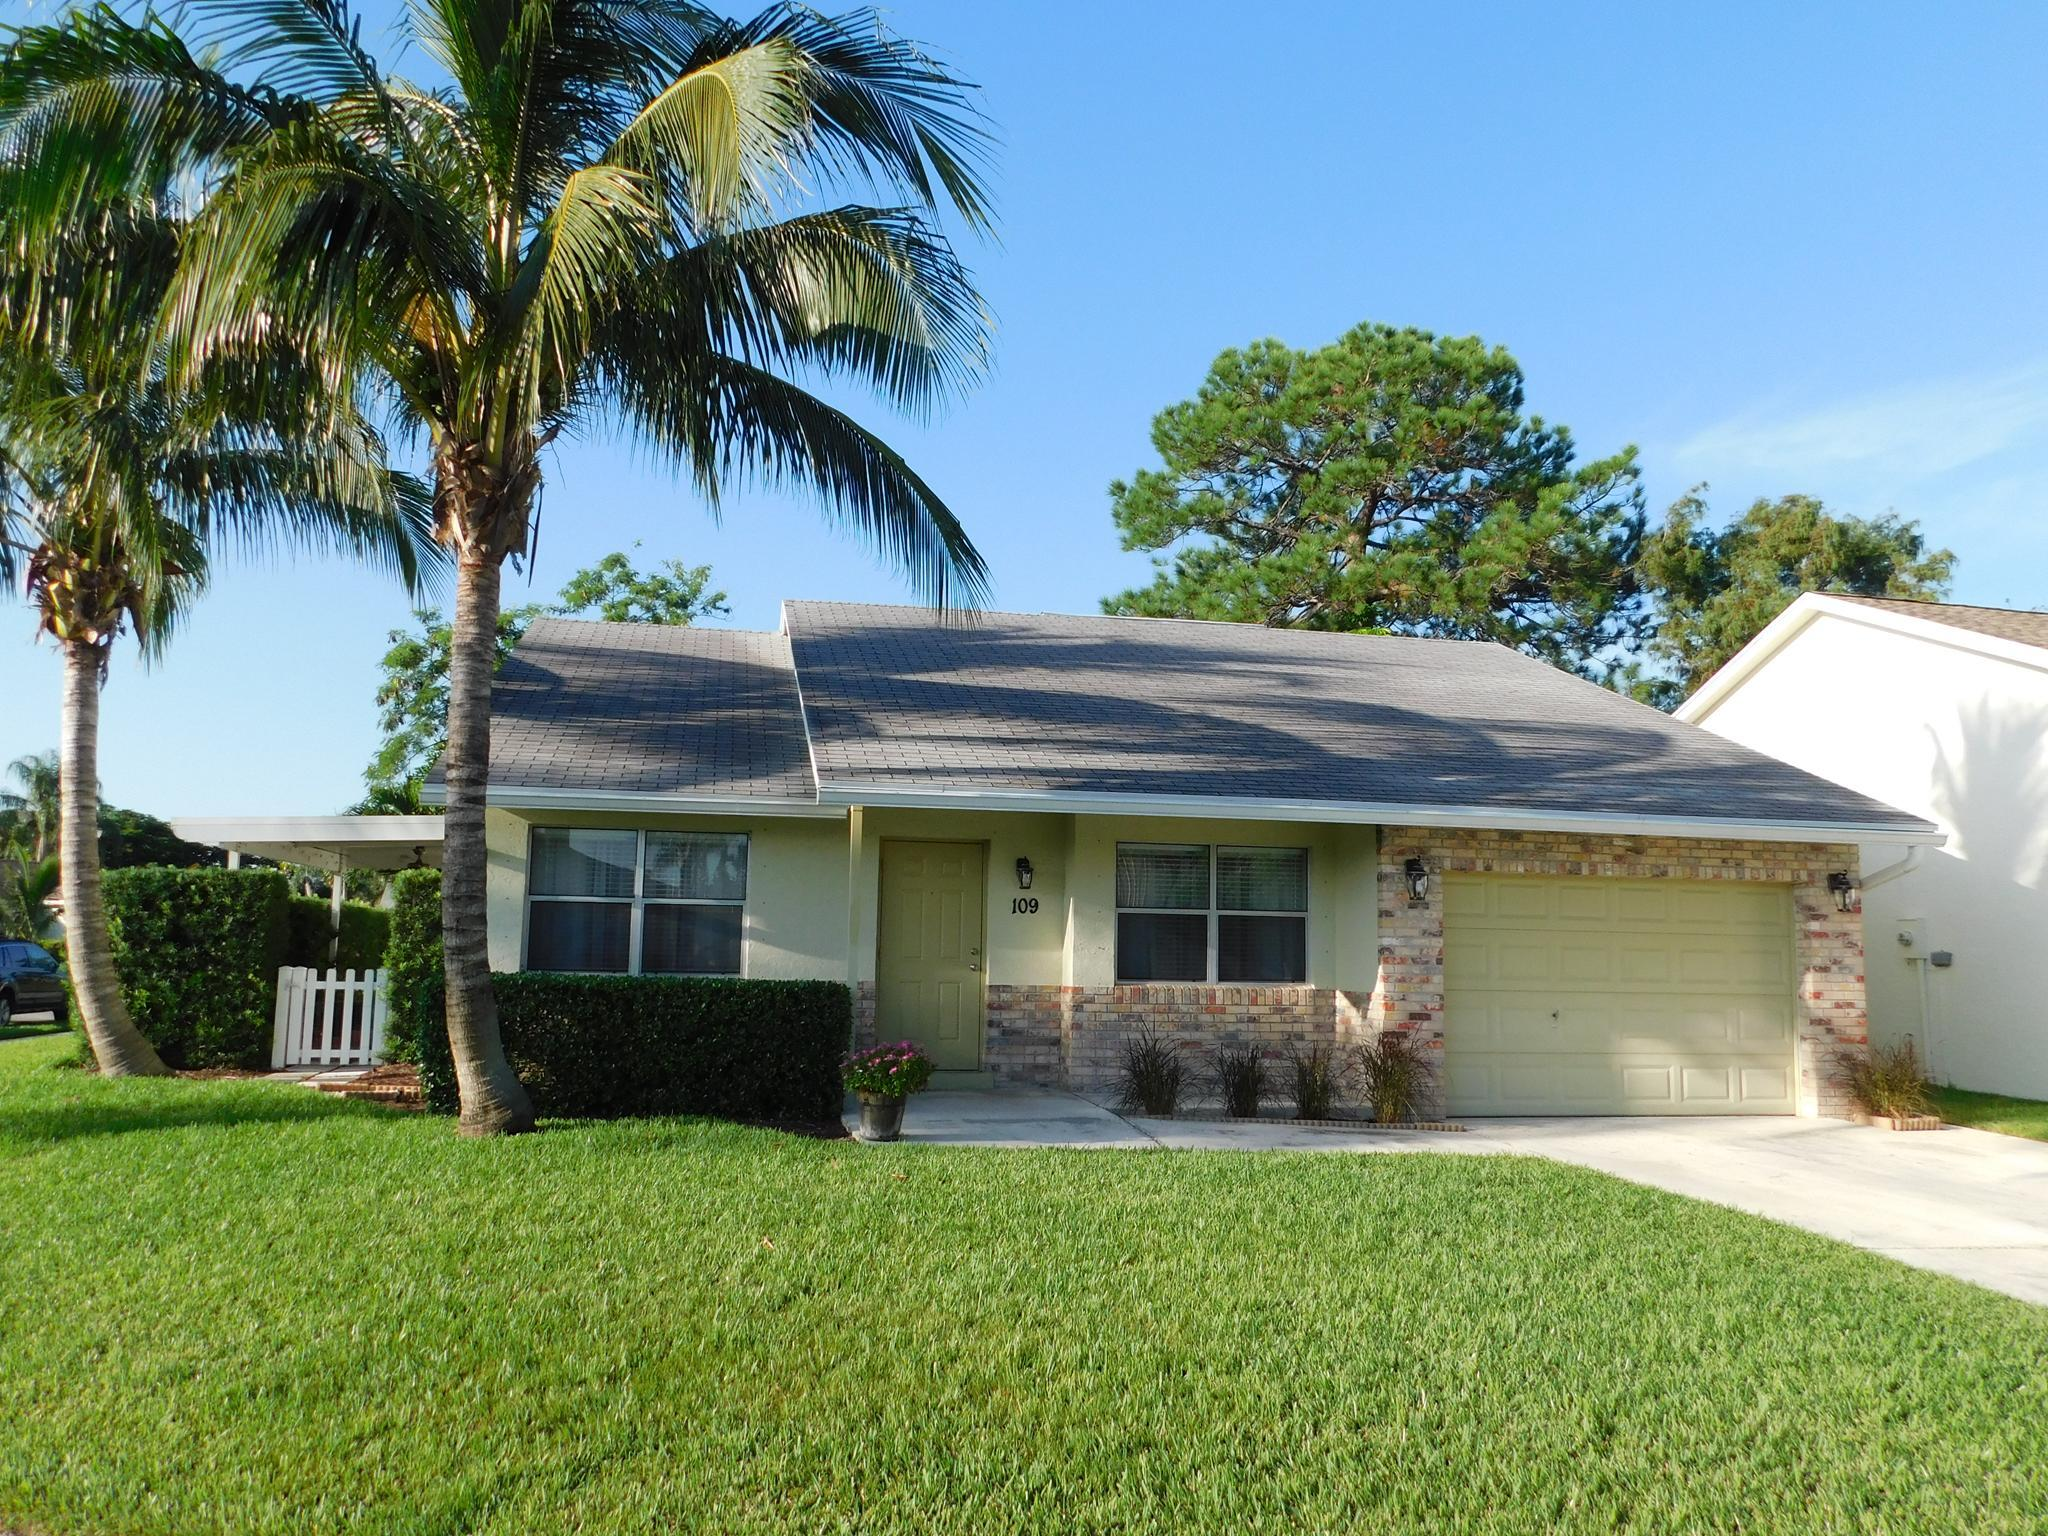 Move-in ready 3BD/2BA single family home in Indian Creek. Open floor plan, vaulted ceiling, large corner lot, covered patio, fenced back yard, new A/C in 2018. Low HOA fees, A+ rated schools, and great location. Convenient to I-95 & Turnpike. Community pool membership available for residents.